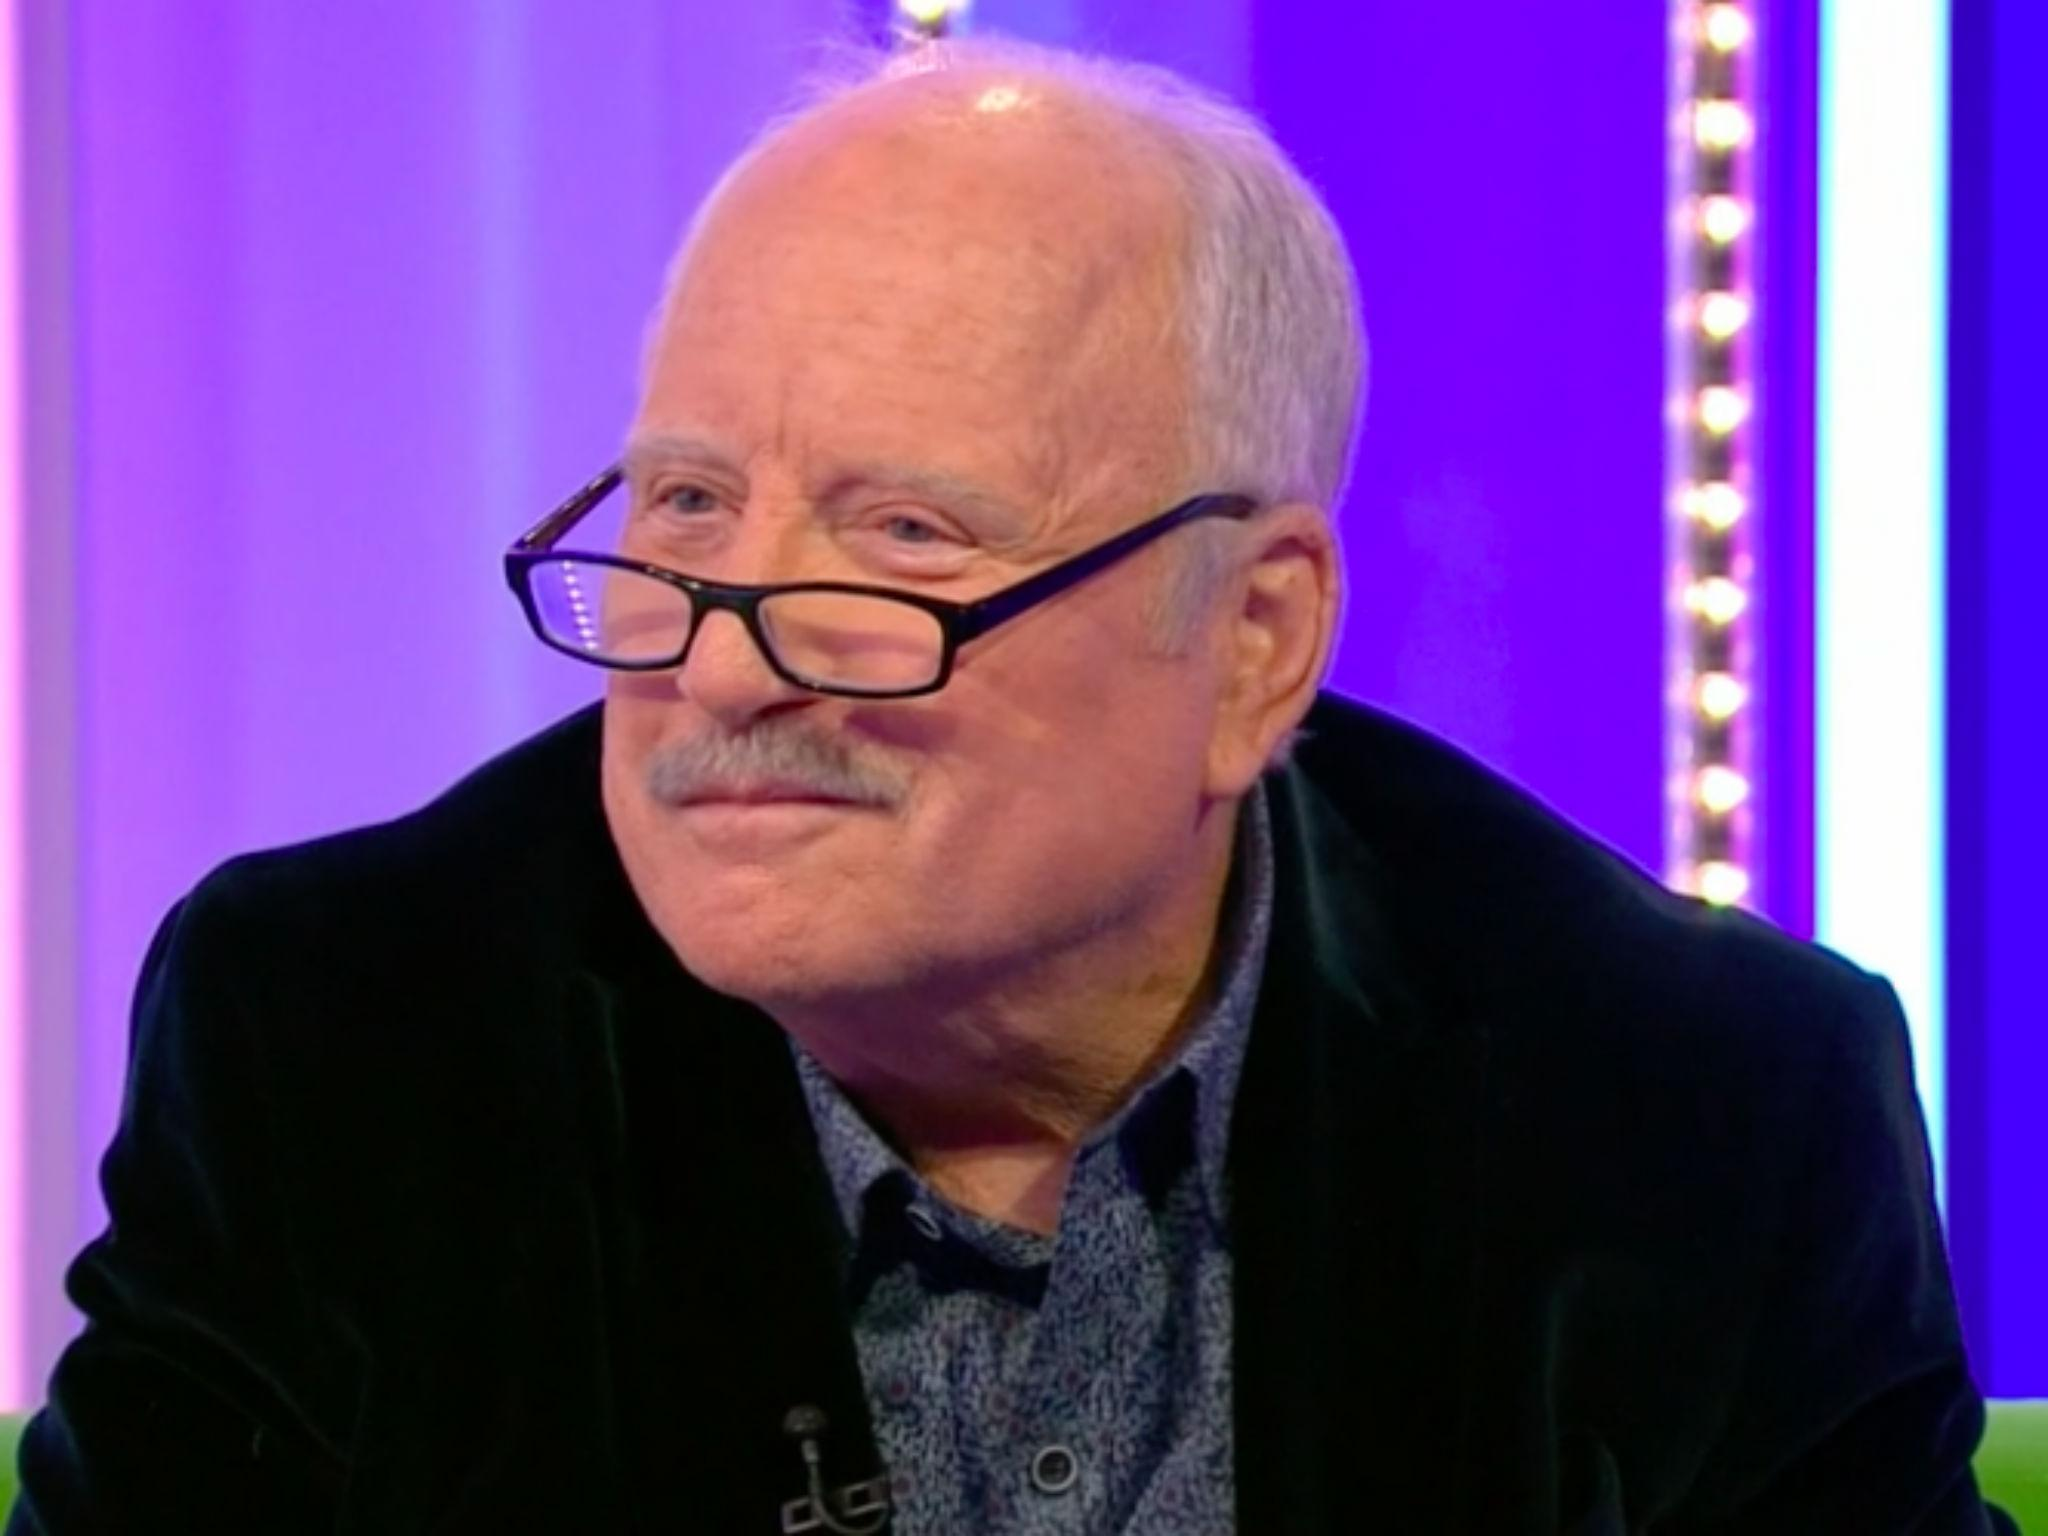 Richard Dreyfuss causes chaos after swearing live on The One